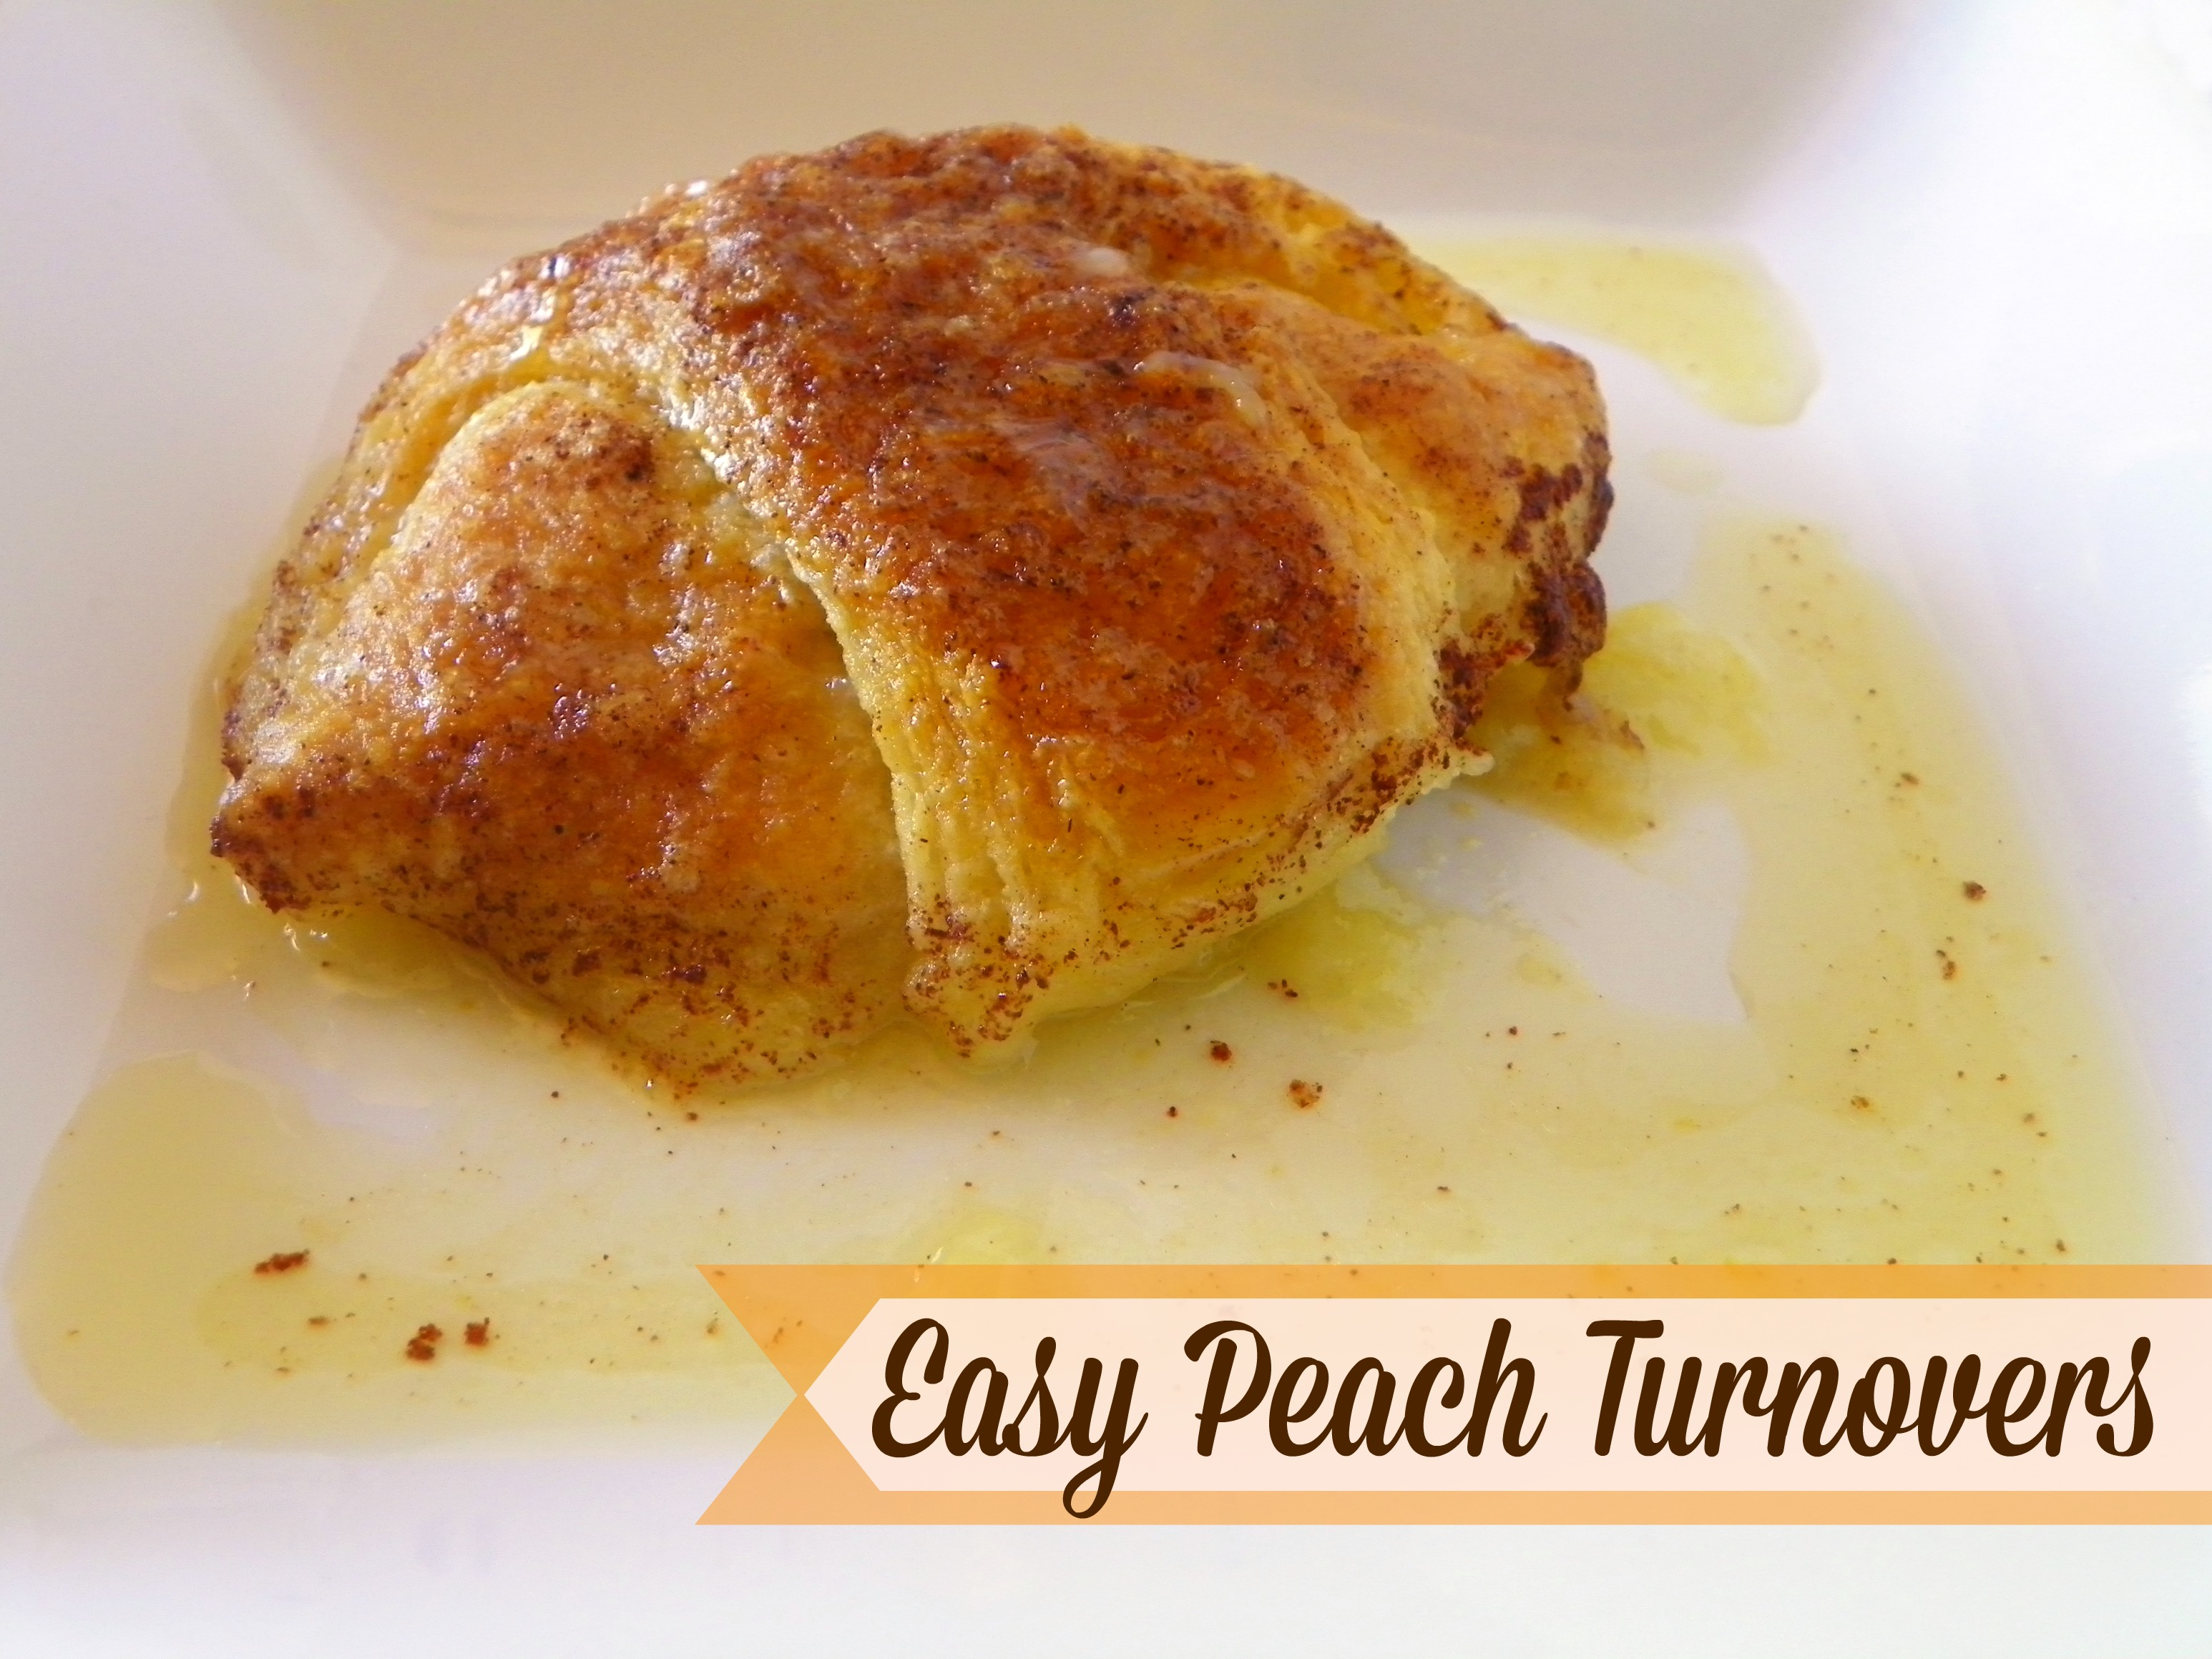 the peach filling is simple flaky peach turnovers easy peach turnovers ...